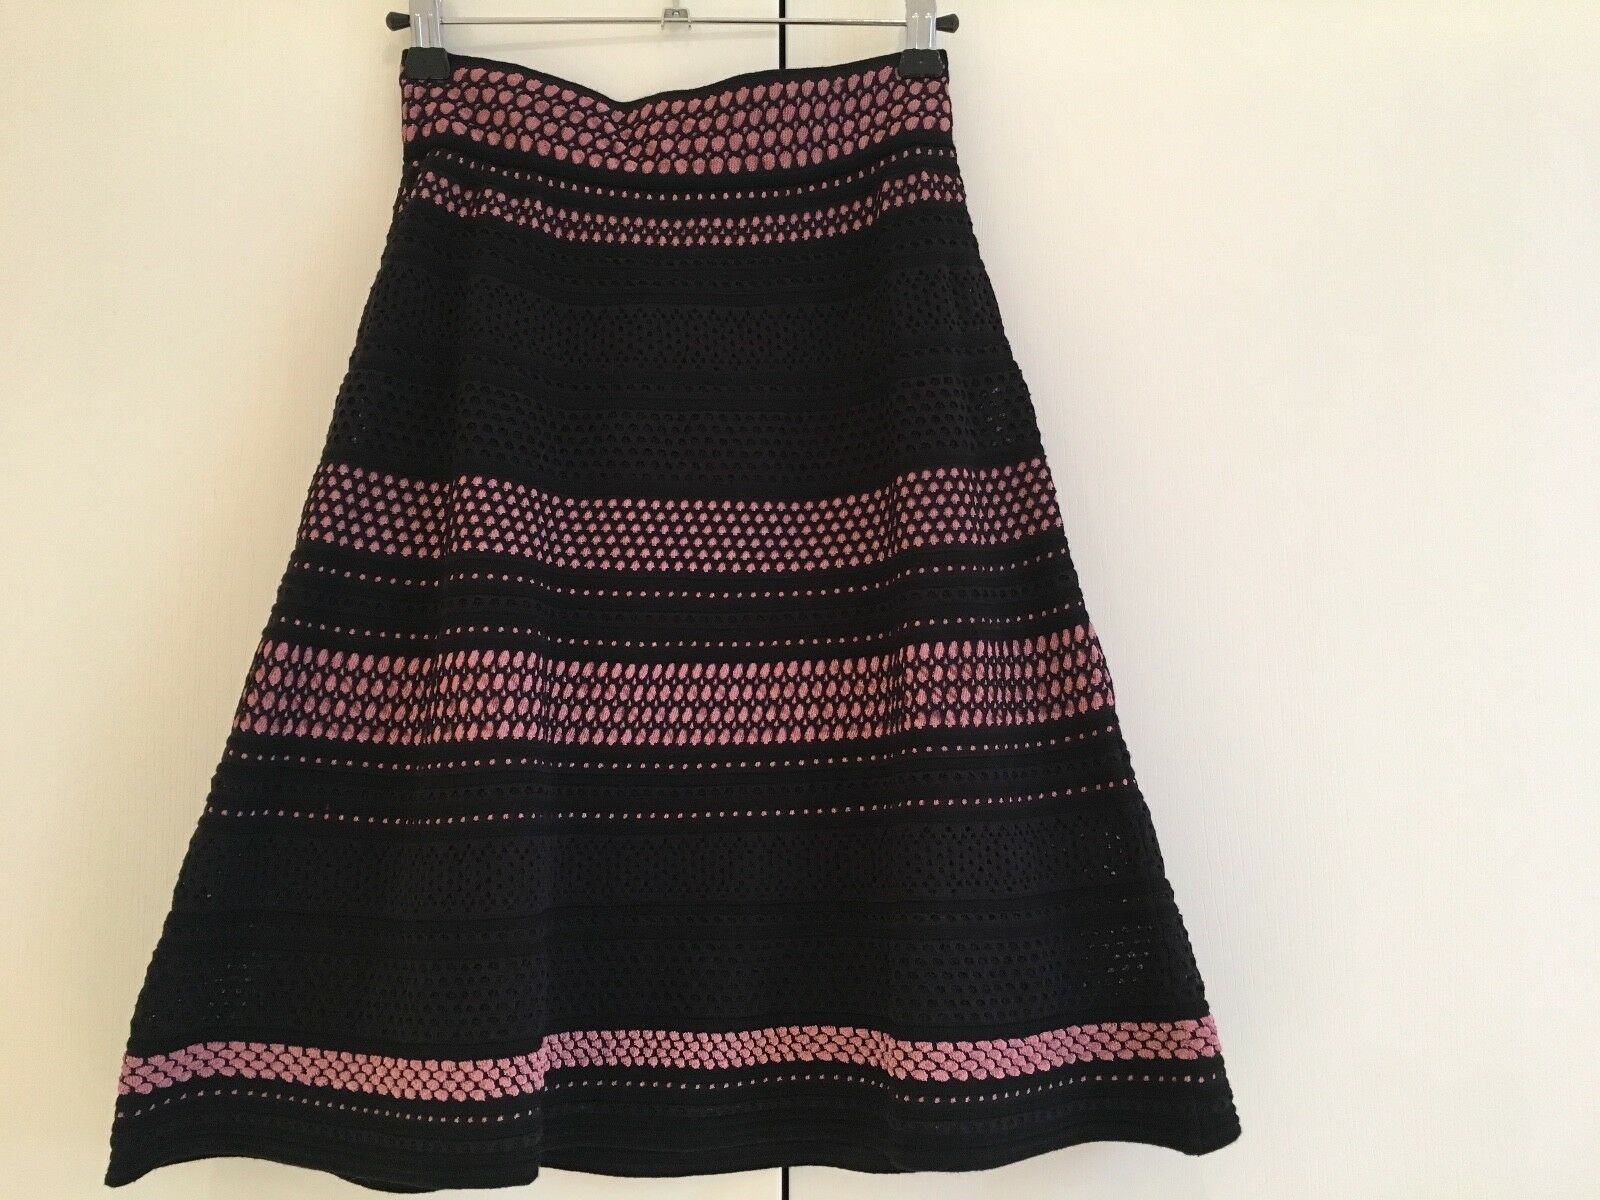 M MISSONI nero nero nero rosa oro Metallizzato Filo Gonna-IT 38 Bnwt-Rrp 350 570efc